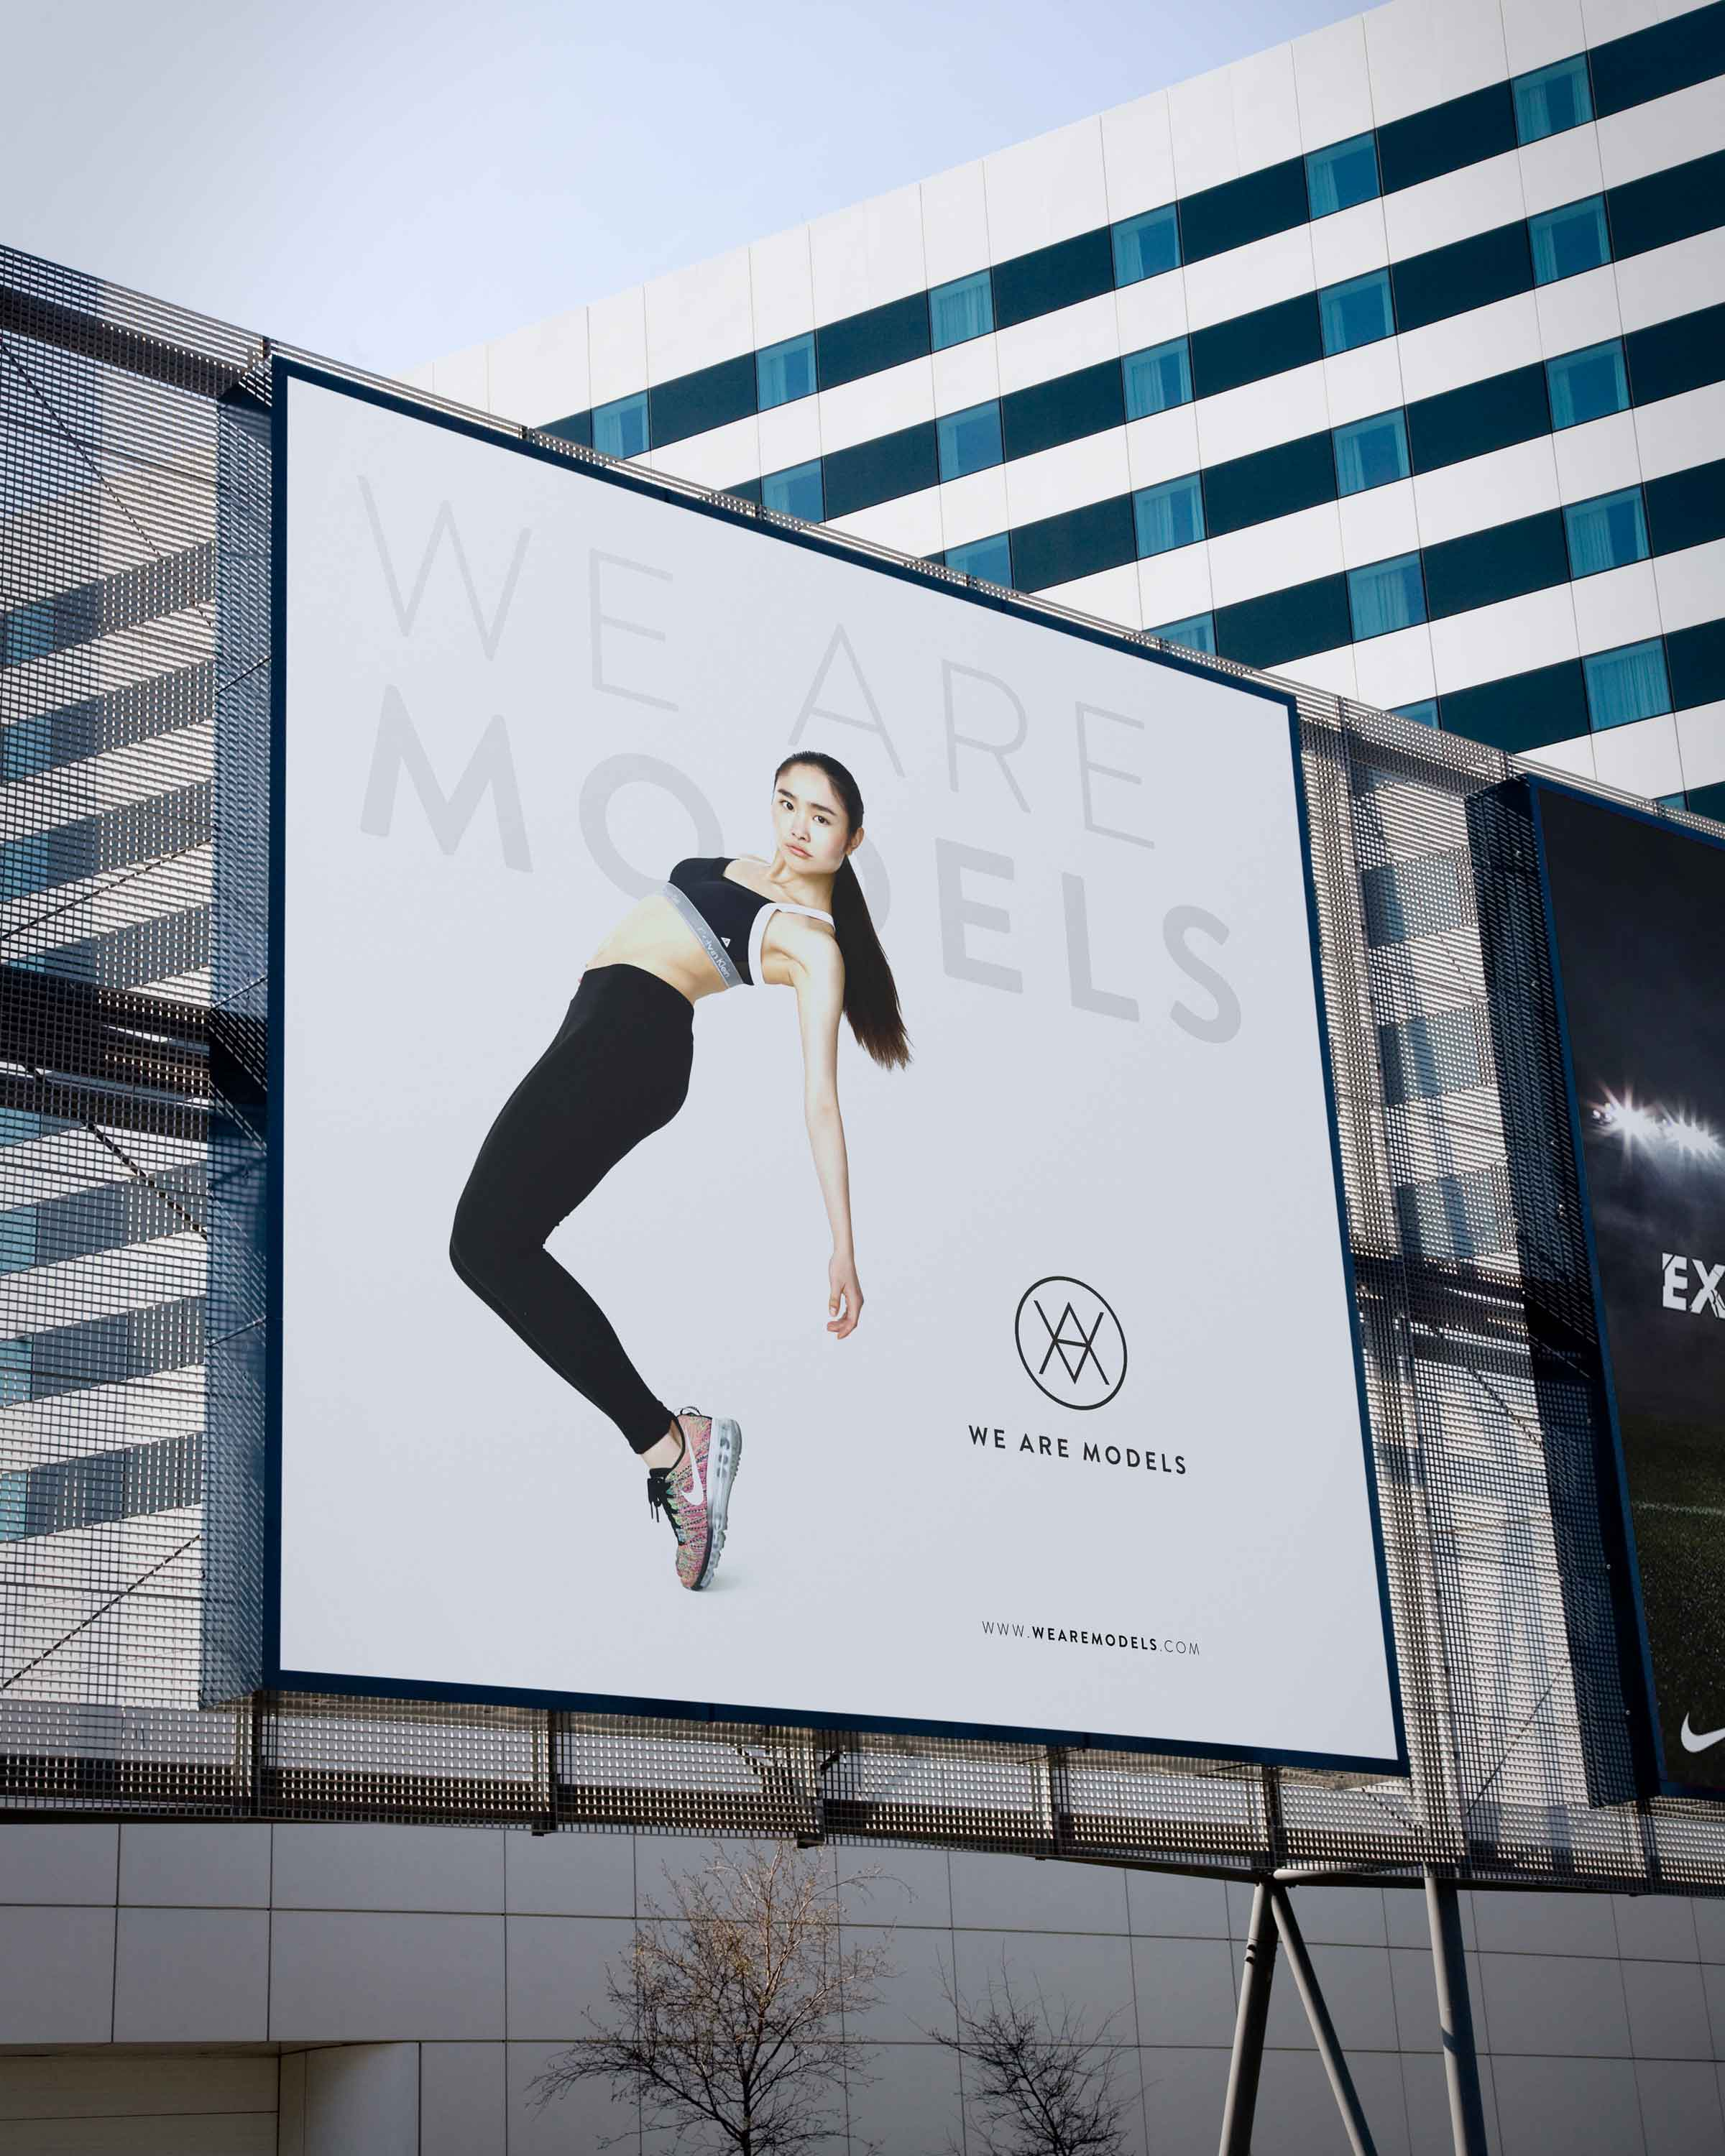 billboard poster for london fashion brand